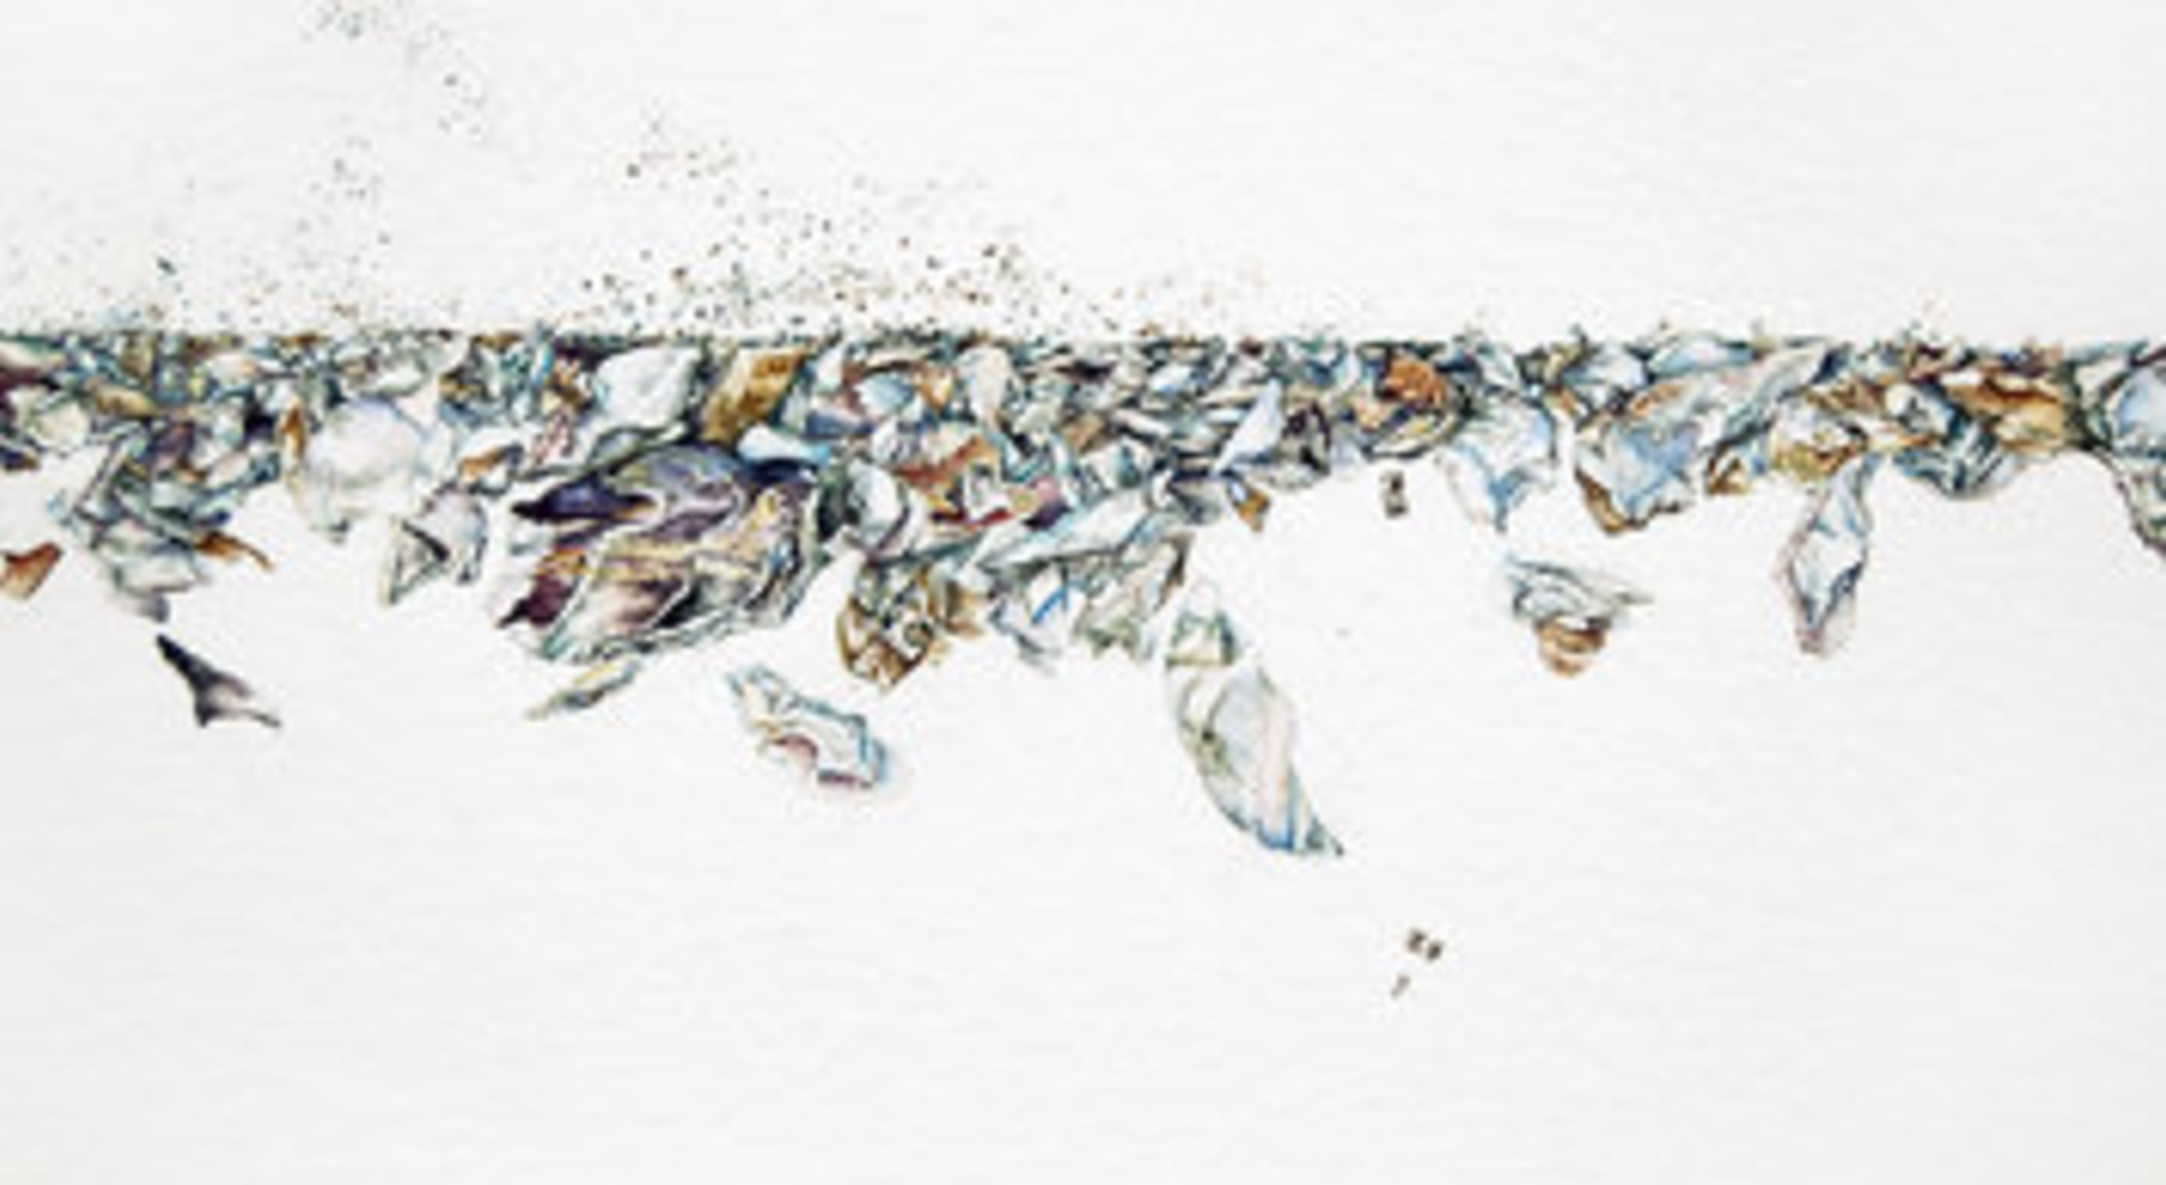 Detail of Jane Wilbraham, Crushed, 2011, watercolour on arches paper, 102 x 152 cm, 40 1/8 x 59 7/8 in